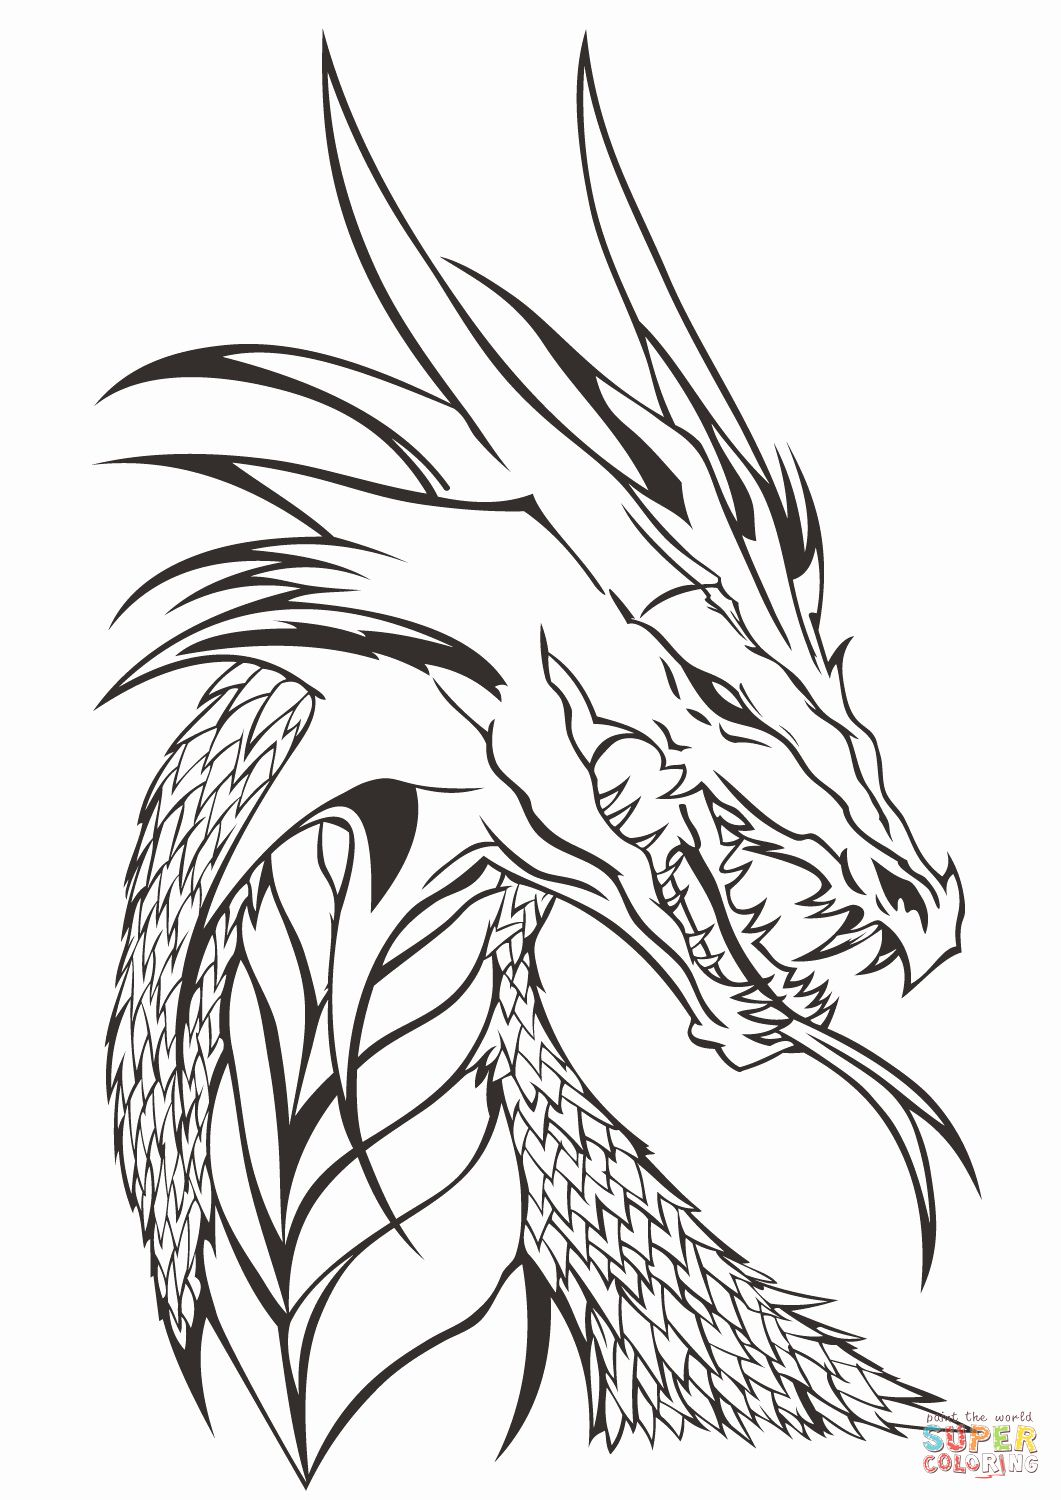 Printable Dragon Coloring Pages Luxury Dragon Head Coloring Page Realistic Dragon Dragon Coloring Page Dragon Pictures